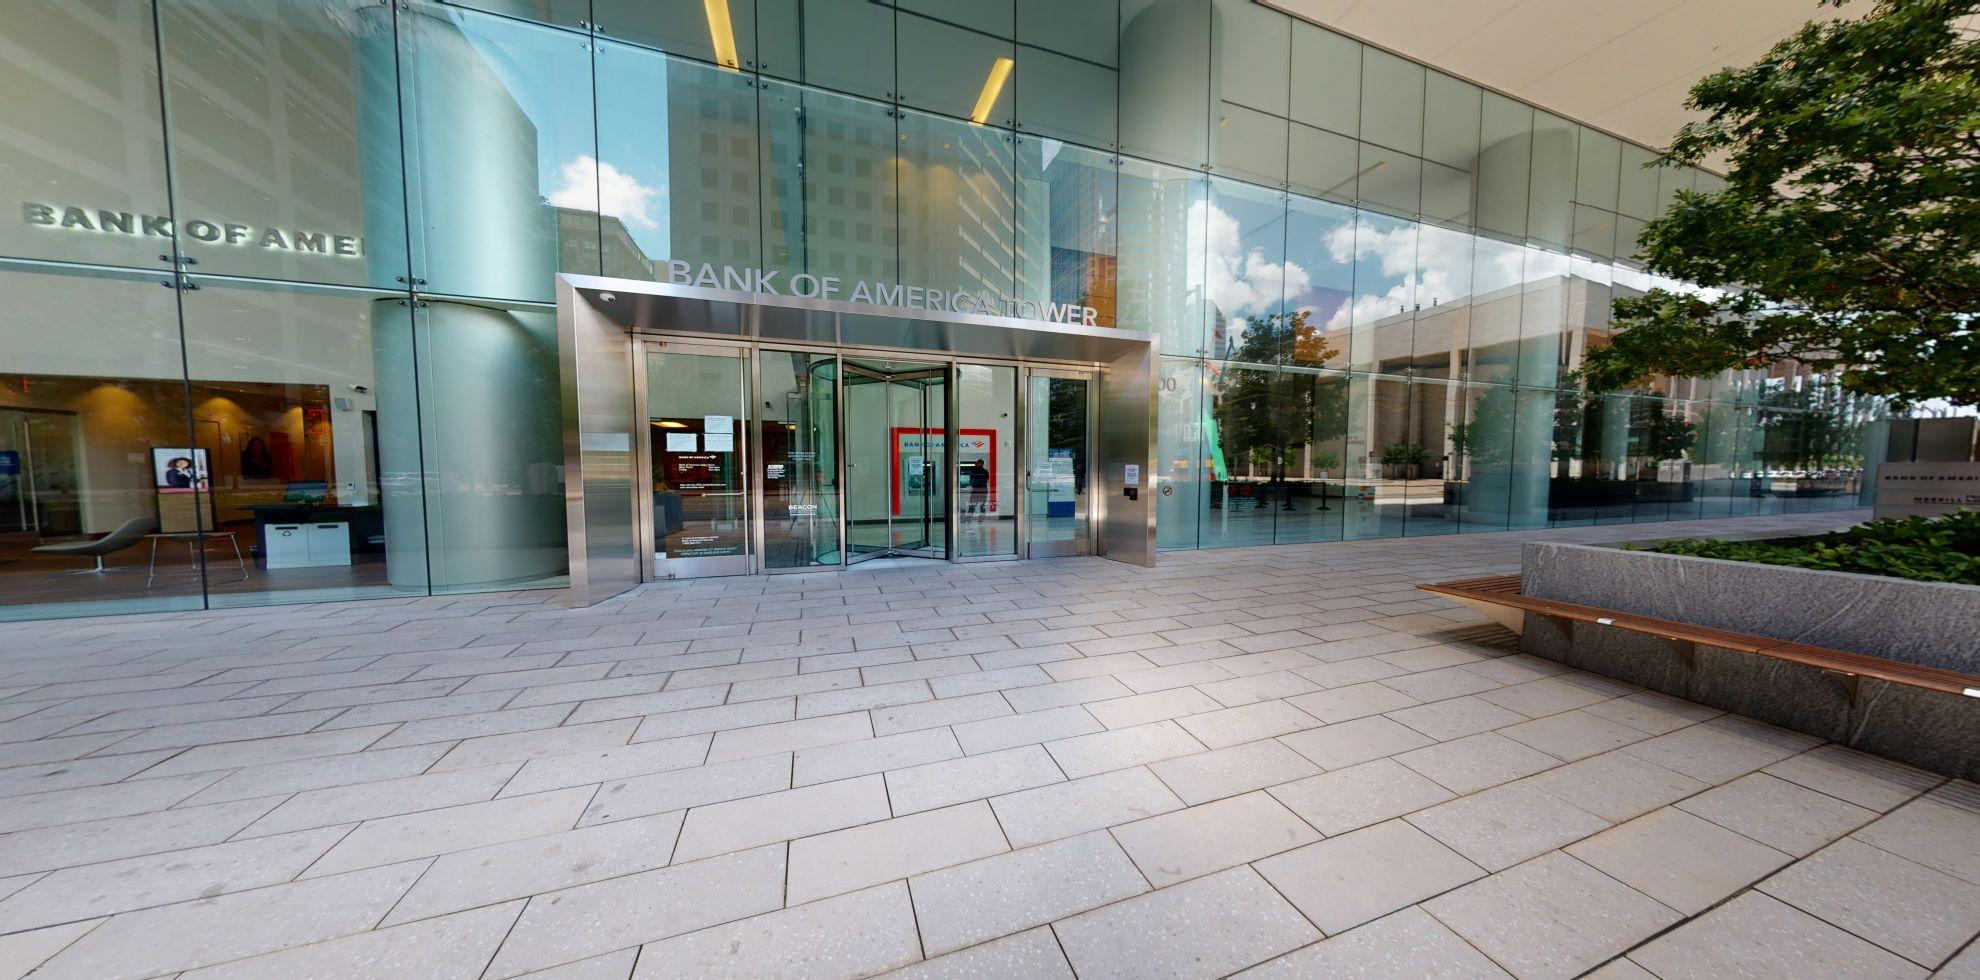 Bank of America financial center with walk-up ATM | 800 Capitol St STE 100, Houston, TX 77002